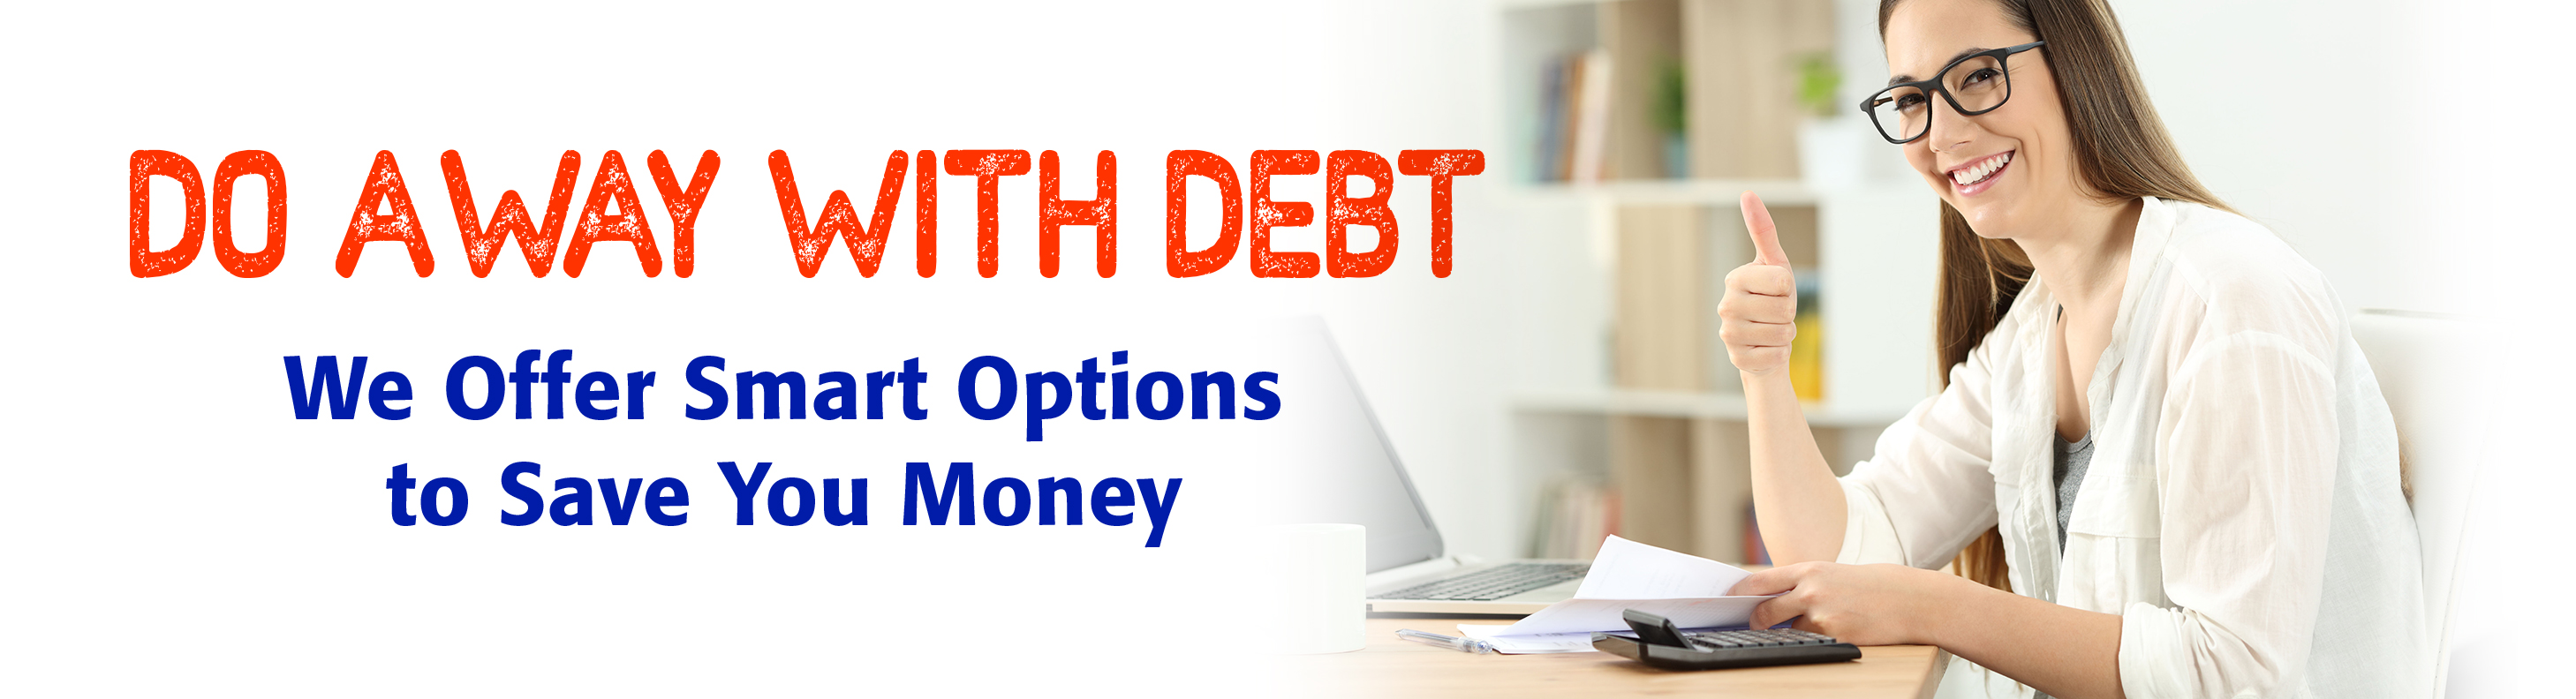 Do Away With Debt - We Have Smart Options to Save You Money!